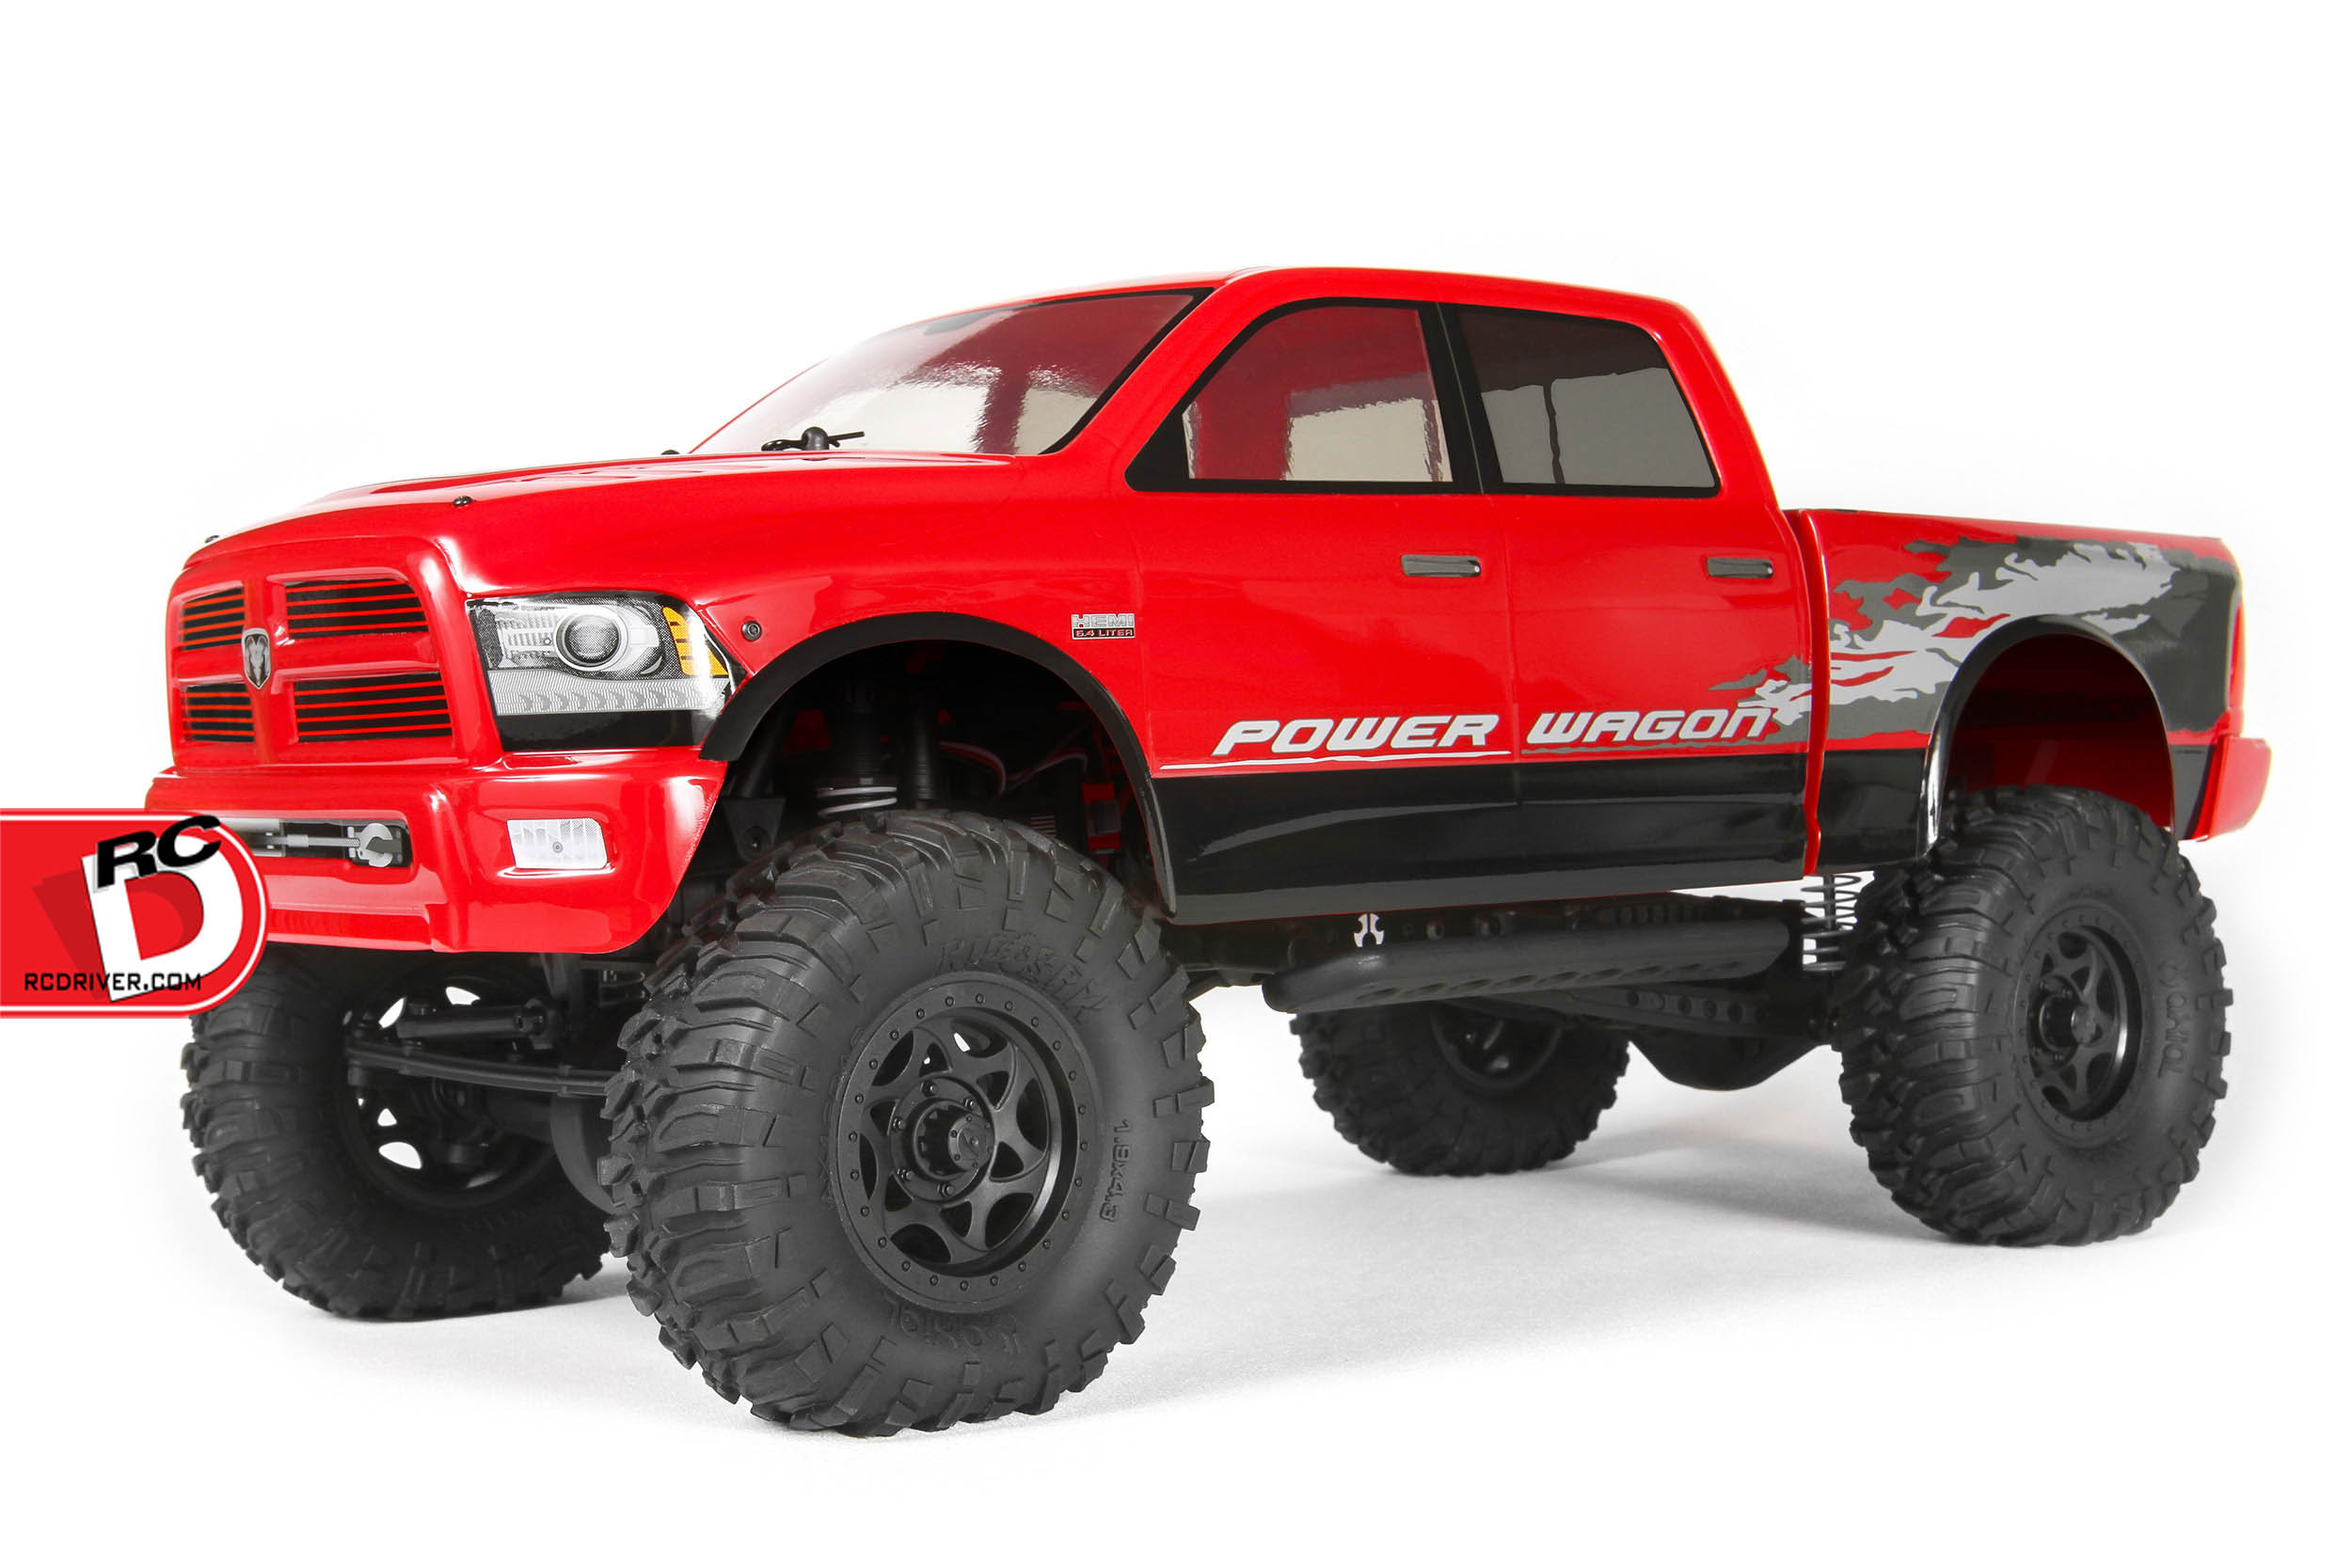 WOW – The Ram Power Wagon from Axial Racing